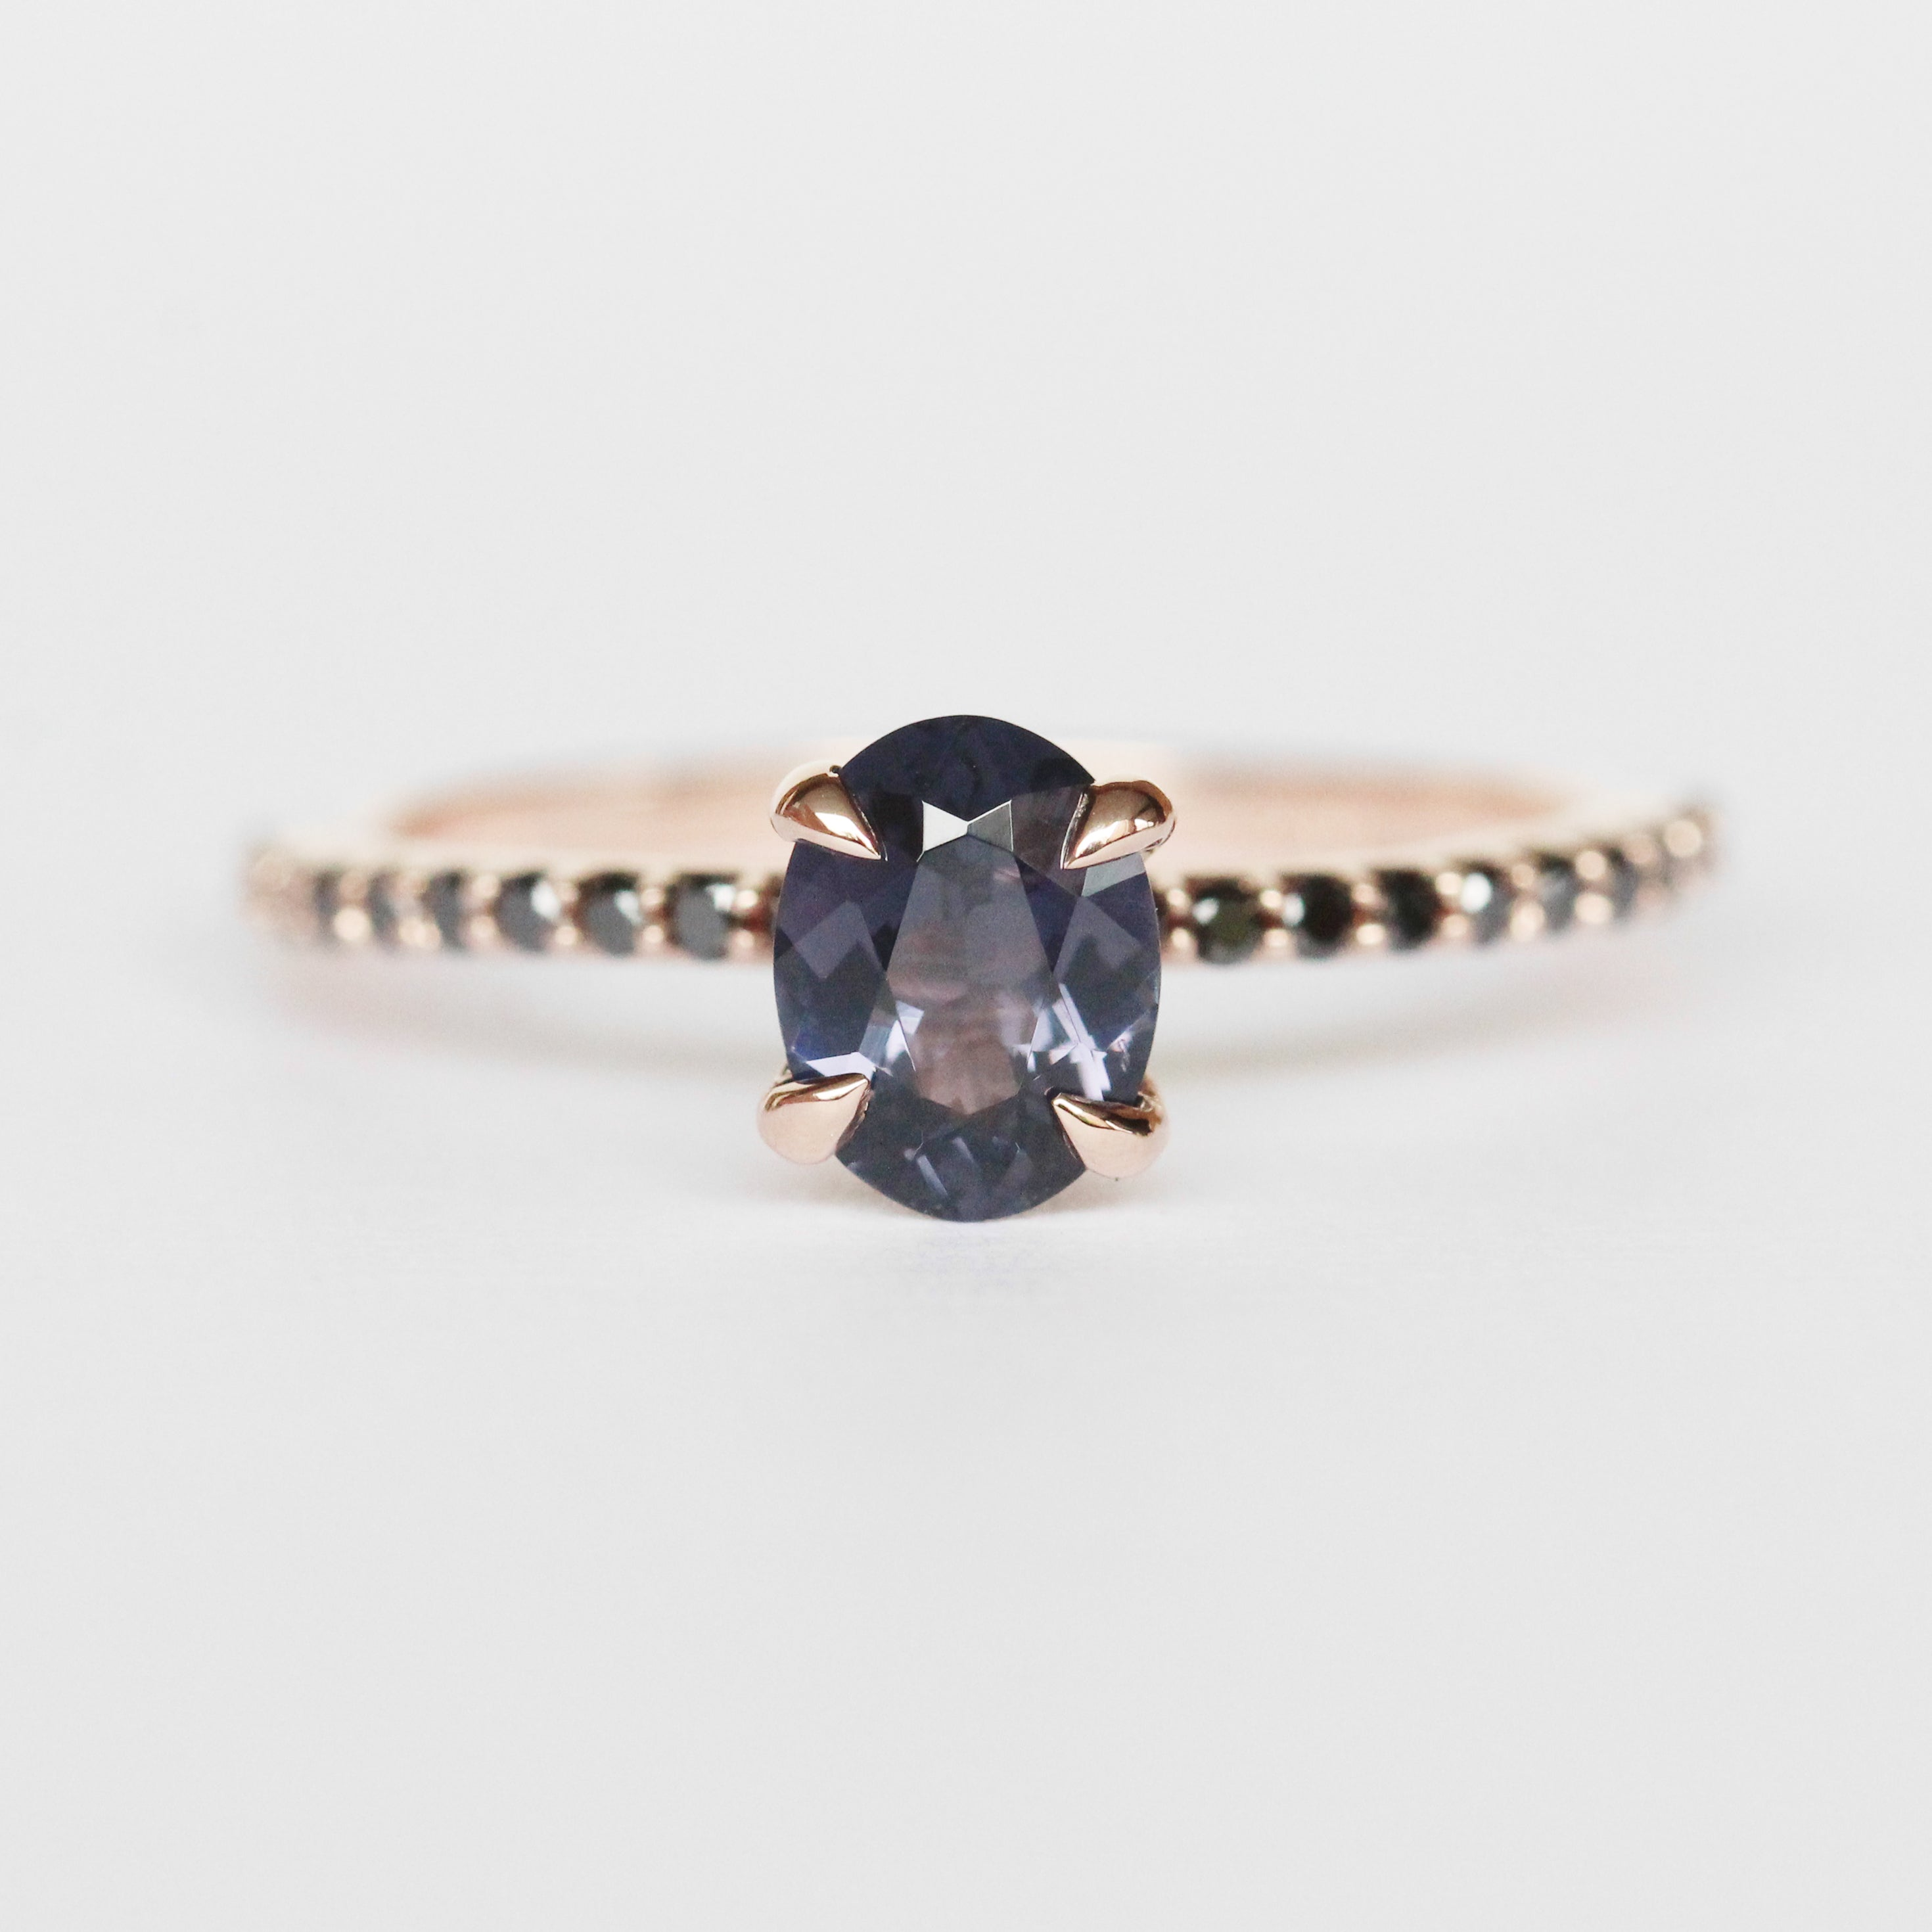 Raine Ring with Purple Spinel and Black Diamond Accents in 10k Rose Gold - Ready to Size and Ship - Salt & Pepper Celestial Diamond Engagement Rings and Wedding Bands  by Midwinter Co.